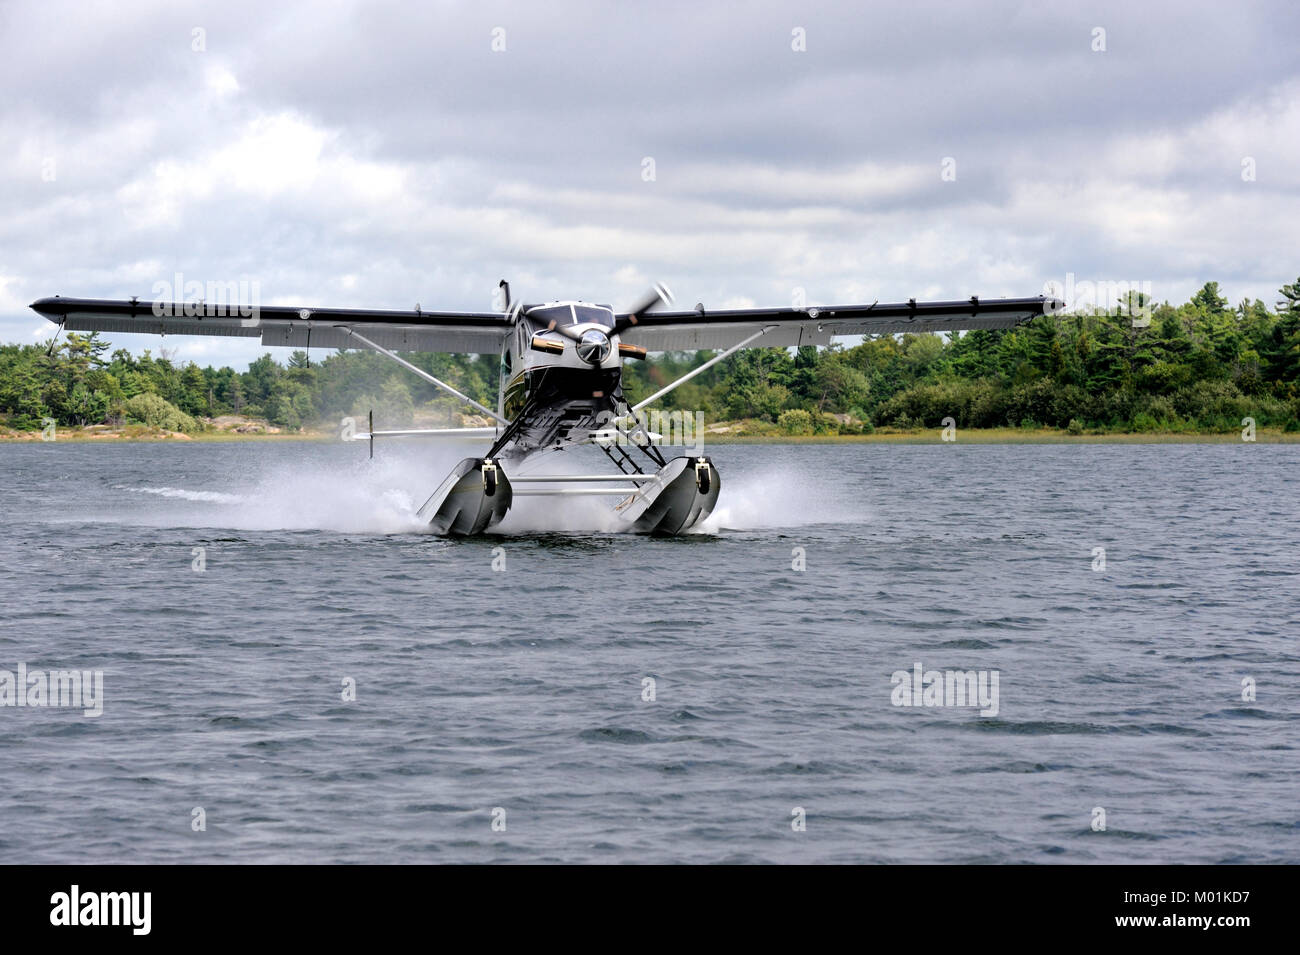 The de Havilland turbo beaver is an updated version of of the DHC-2 which has been a work horse in the Canadian Stock Photo